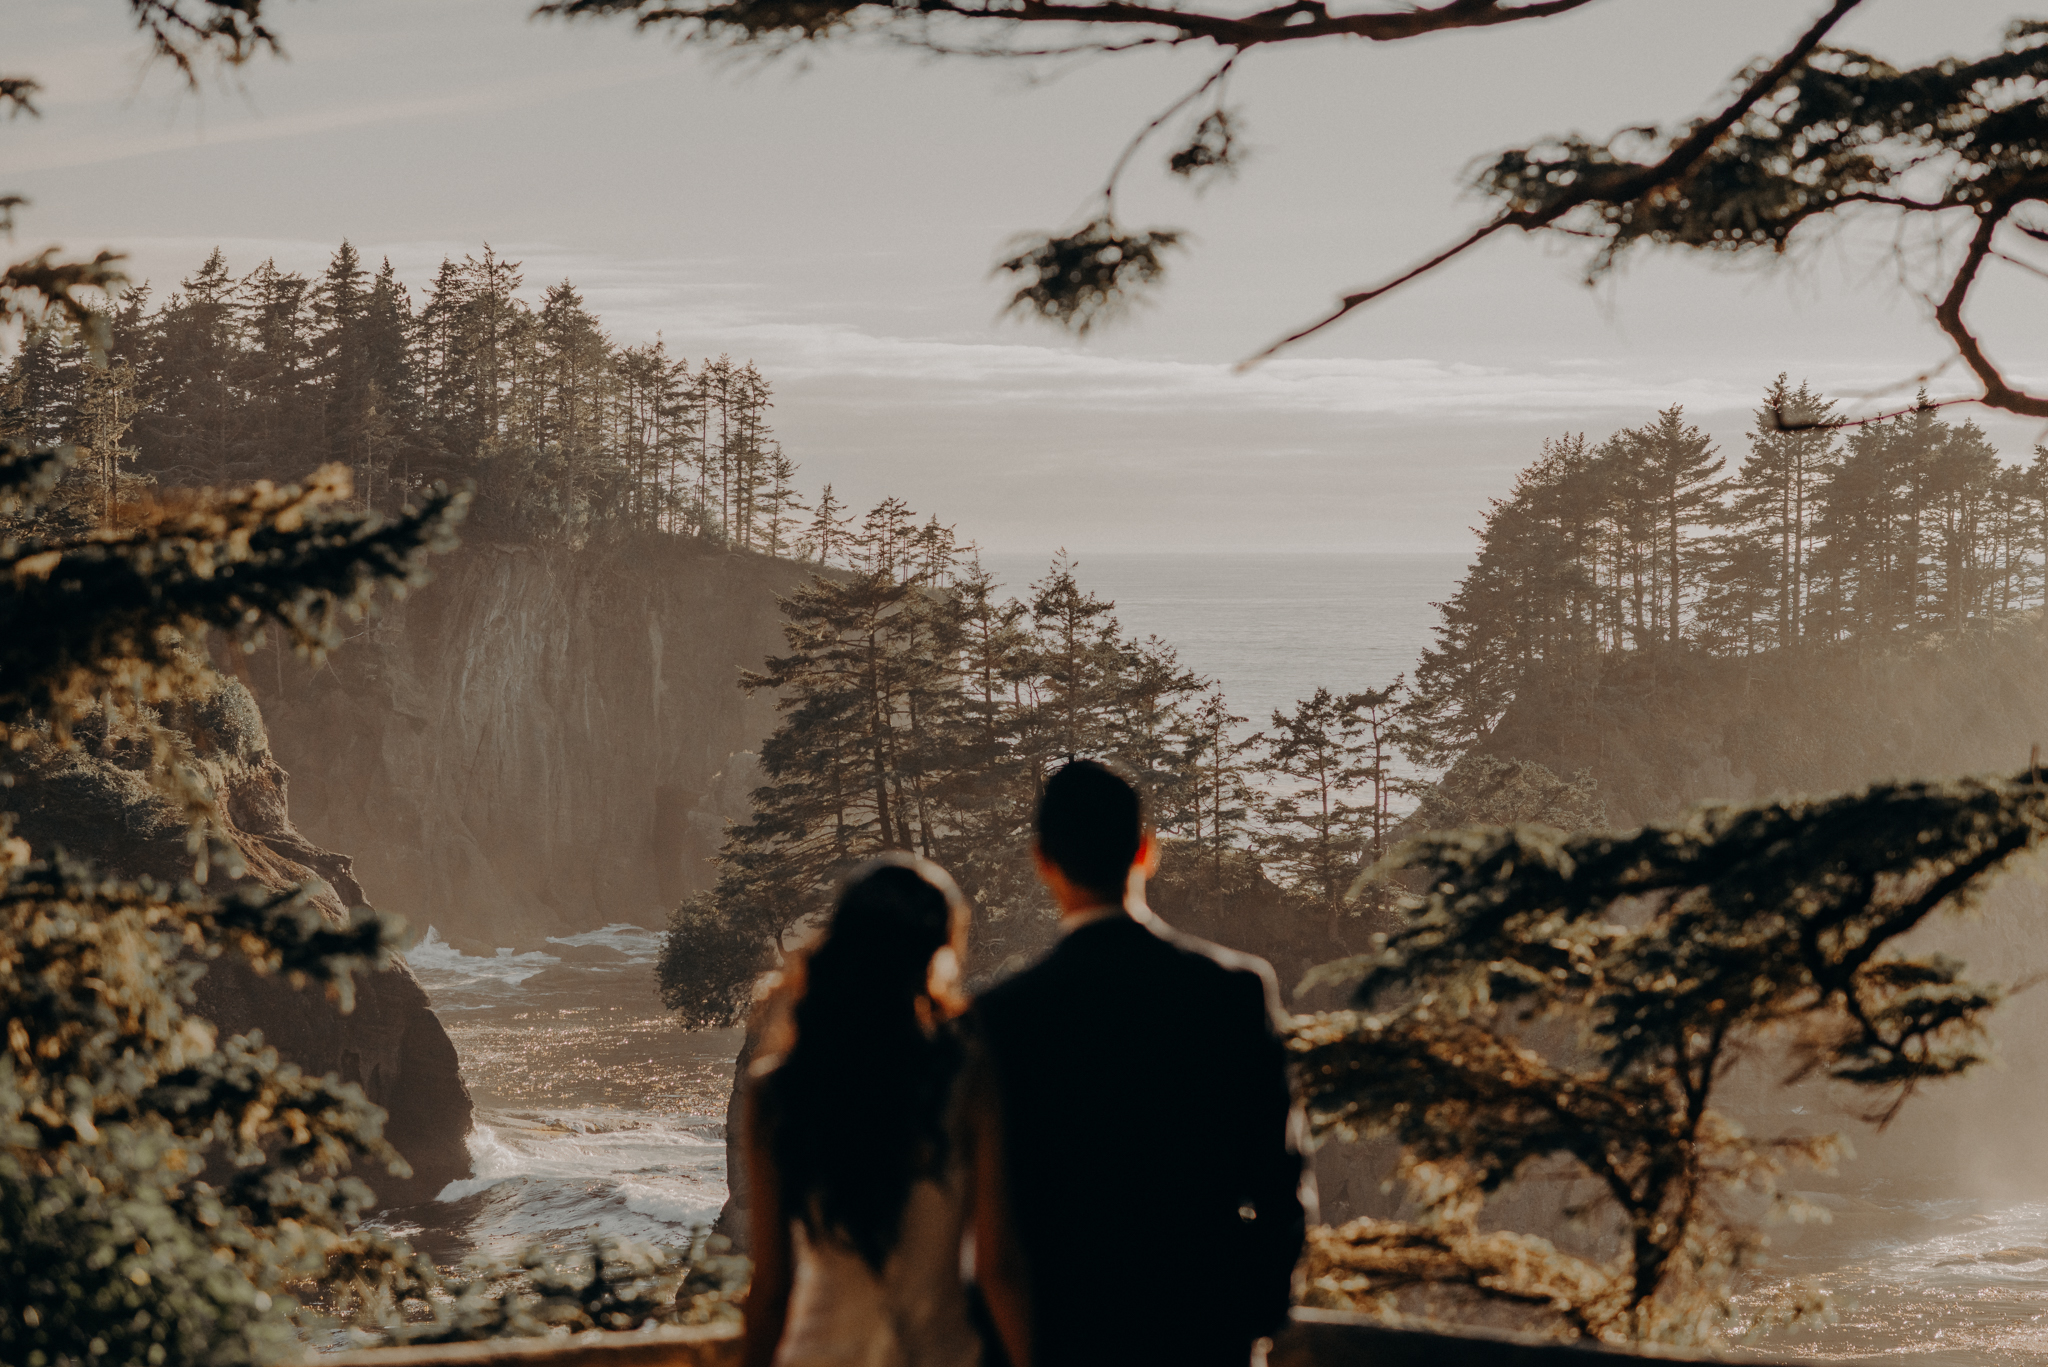 Isaiah + Taylor Photography - Cape Flattery Elopement, Olympia National Forest Wedding Photographer-108.jpg